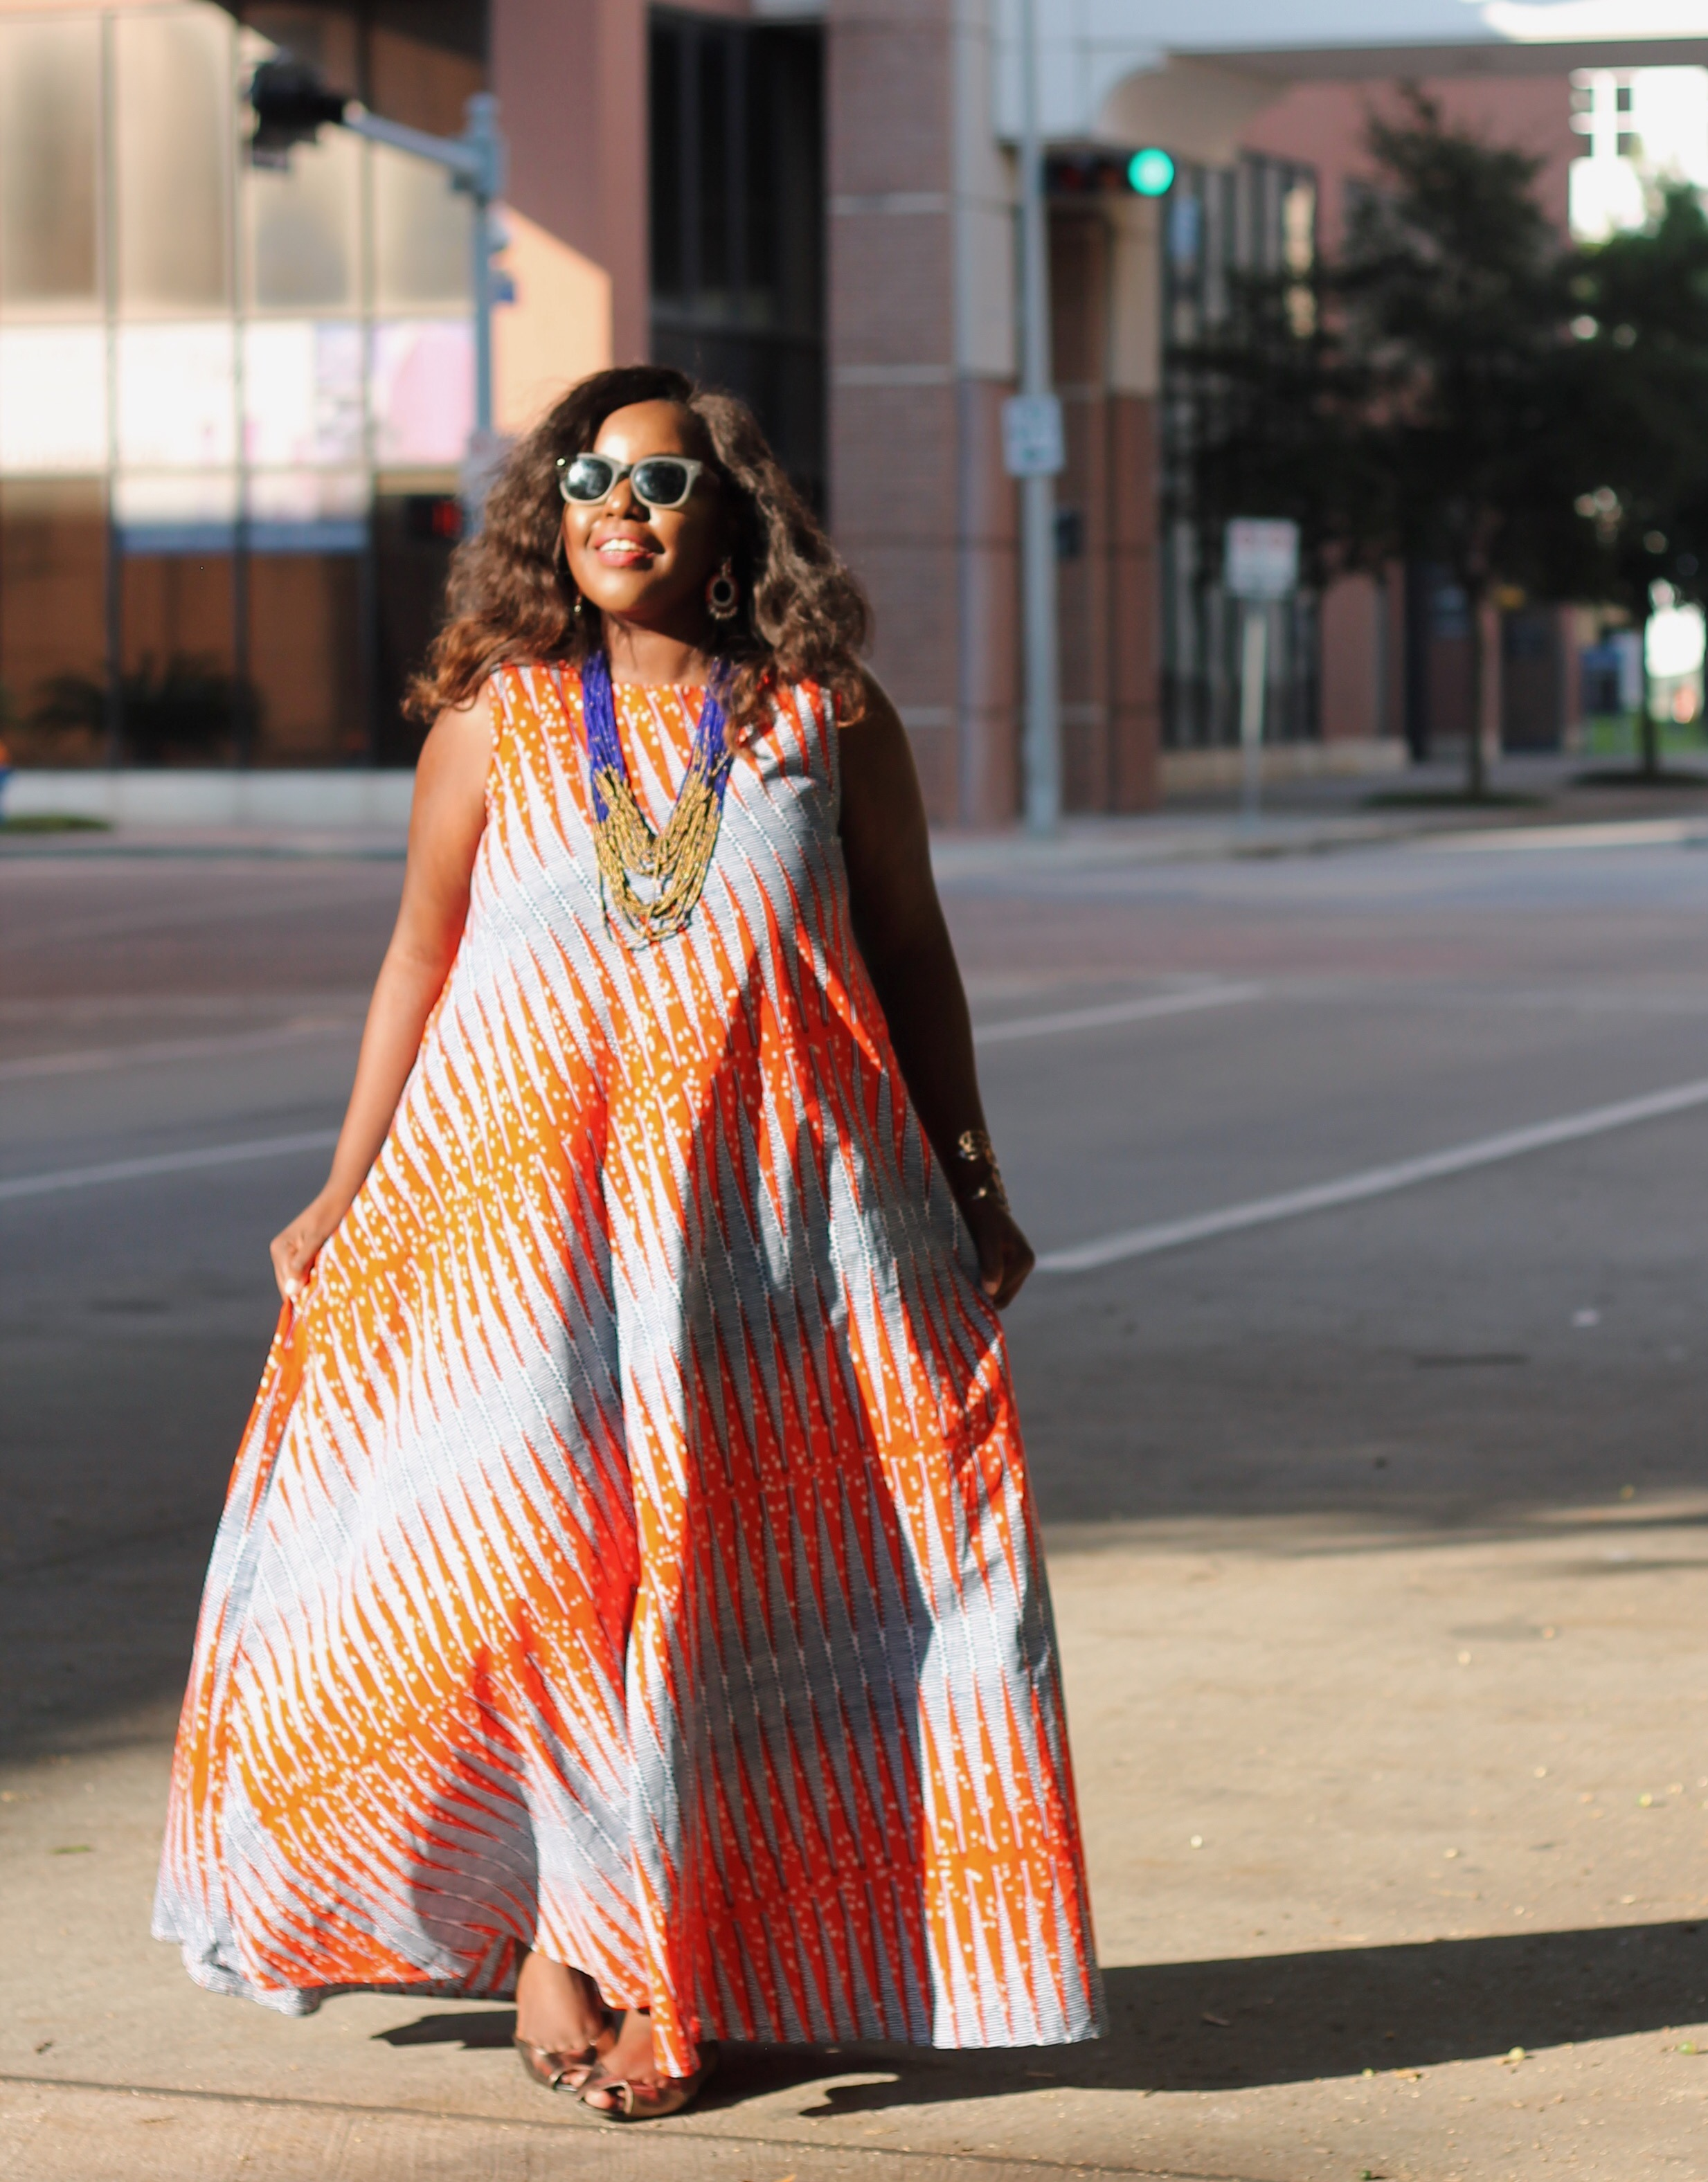 asos curve bloggers, beautiful curvy girls, curvy style dark skin fashion blogger curvy style blogger, dark skin beauty blogger, dark skin blogger, houston blogger, inspiration for 2016, inspiring bloggers and blogs, new years resolutions, plus size blogger, quotes for 2016, relationship advice blogs, rules to live by in the new year, texas blogger, travel blogger, ugandan blogger, ugandan fashionista, ugandan style blogger, african print ankara skirt styles, where to get african print clothes in America and uk, exposure african crafts in kampala uganda, kyaligonza kampala african material, ankara,